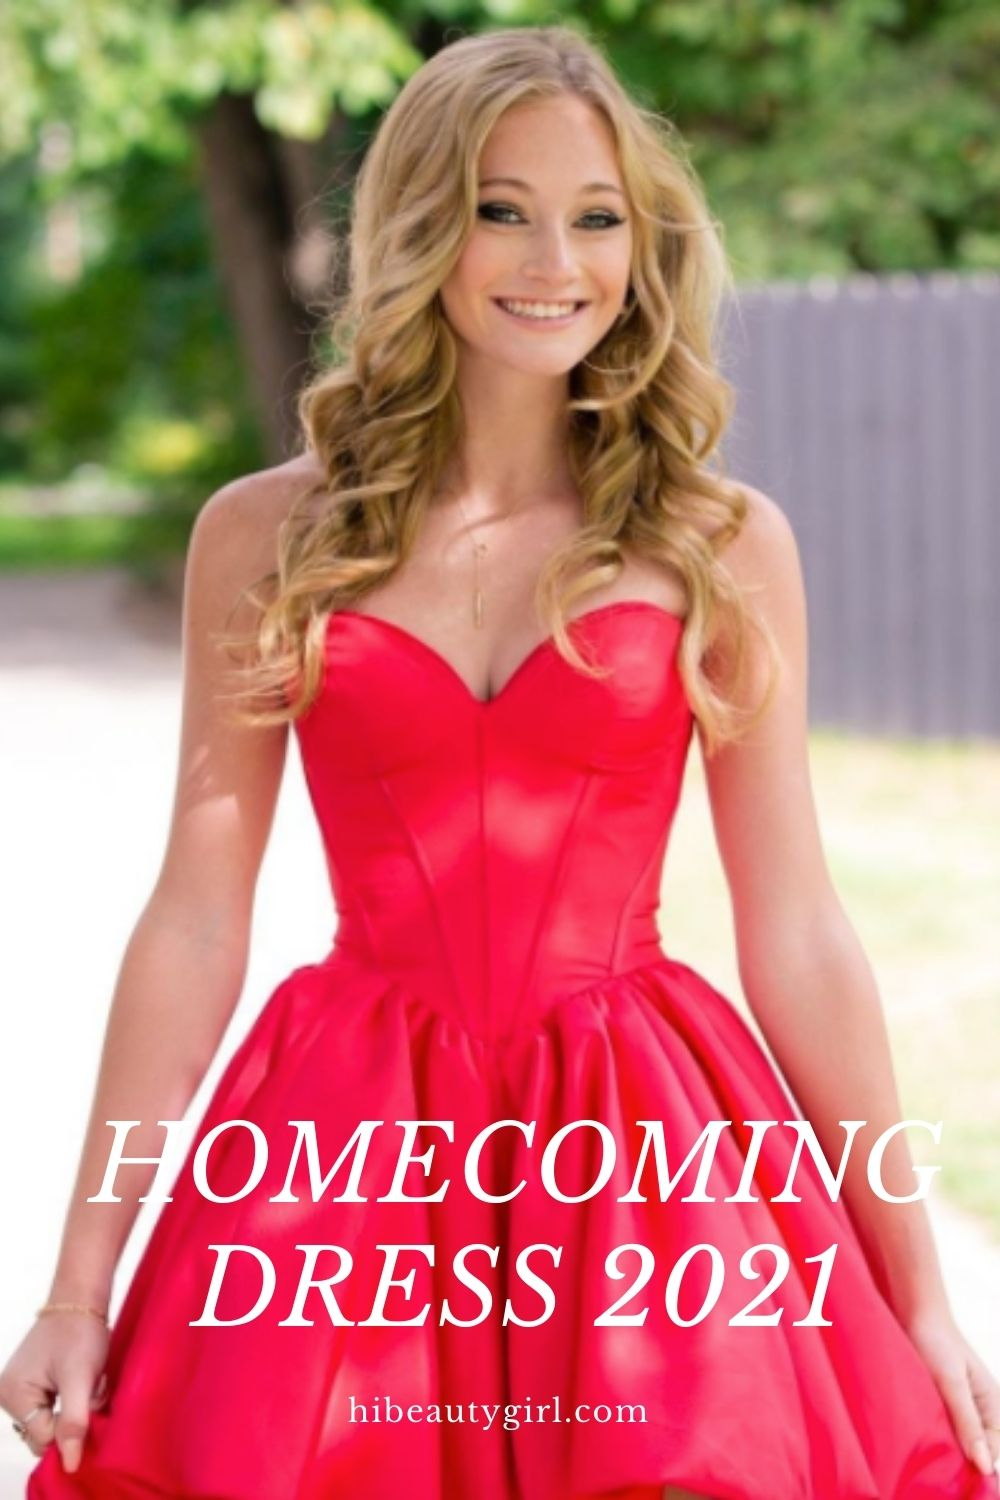 How to choose homecoming dress color 2021?